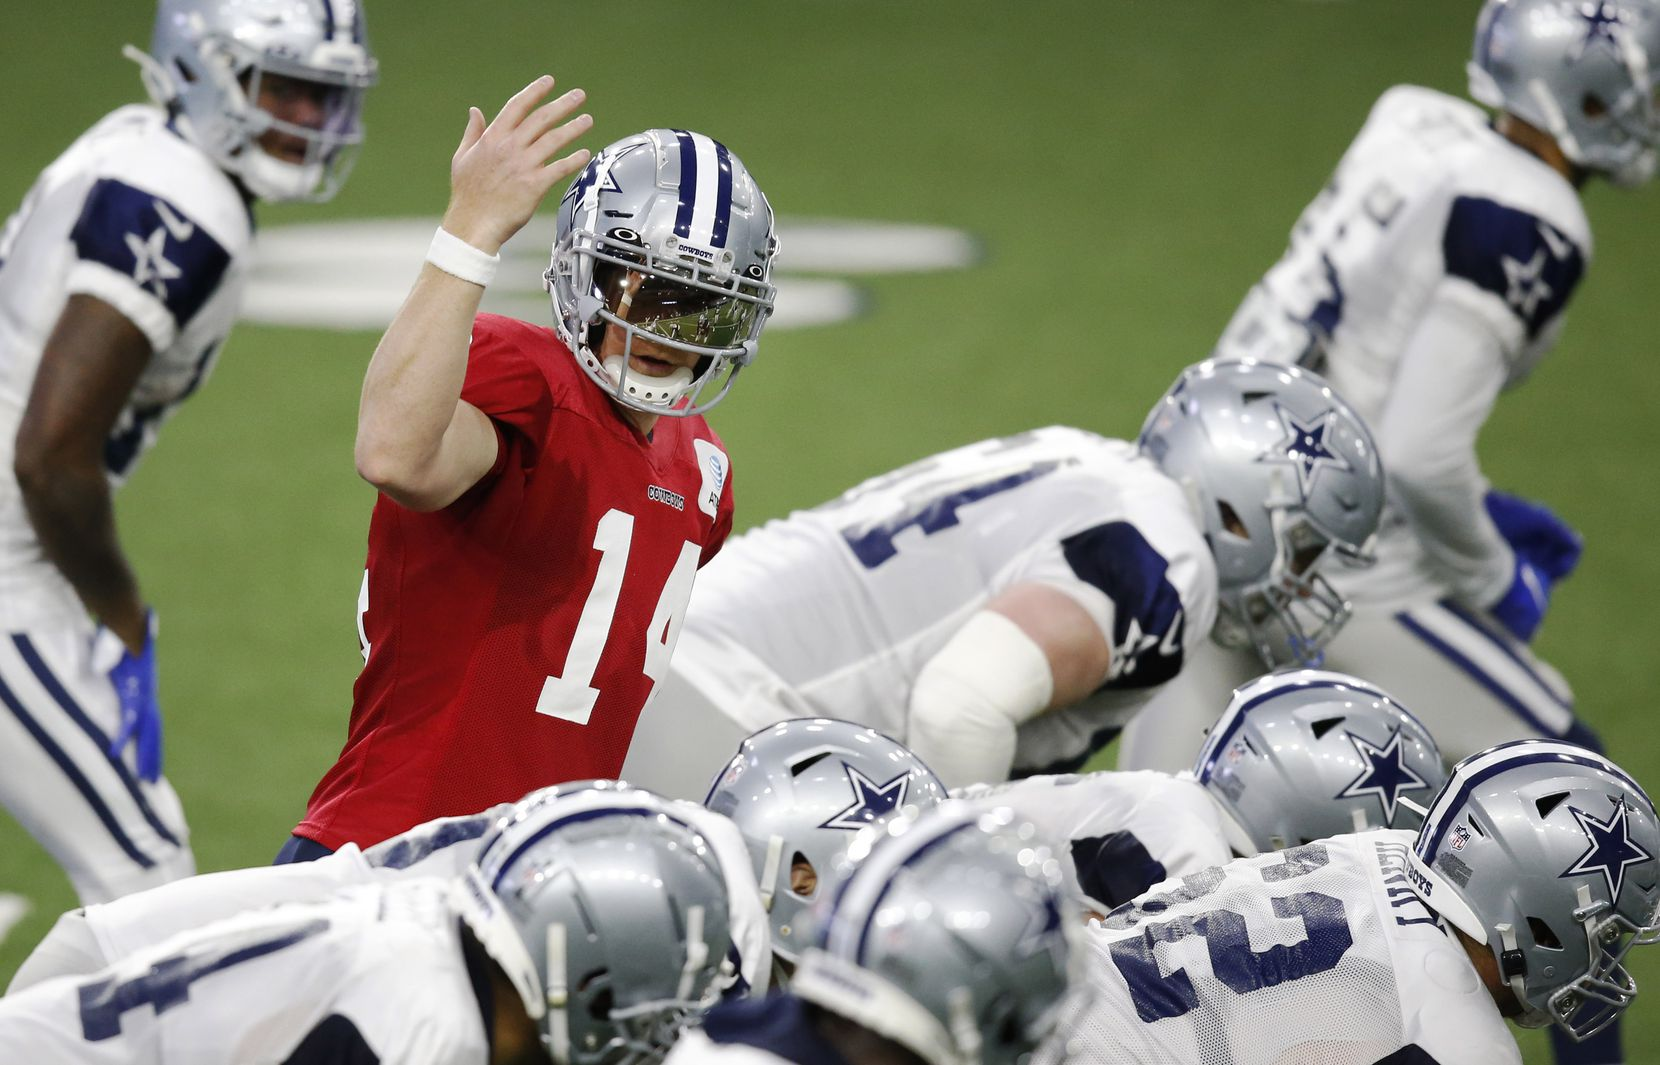 Dallas Cowboys quarterback Andy Dalton (14) signals to a teammate before the snap during training camp at the Dallas Cowboys headquarters at The Star in Frisco, Texas on Thursday, August 27, 2020. (Vernon Bryant/The Dallas Morning News)